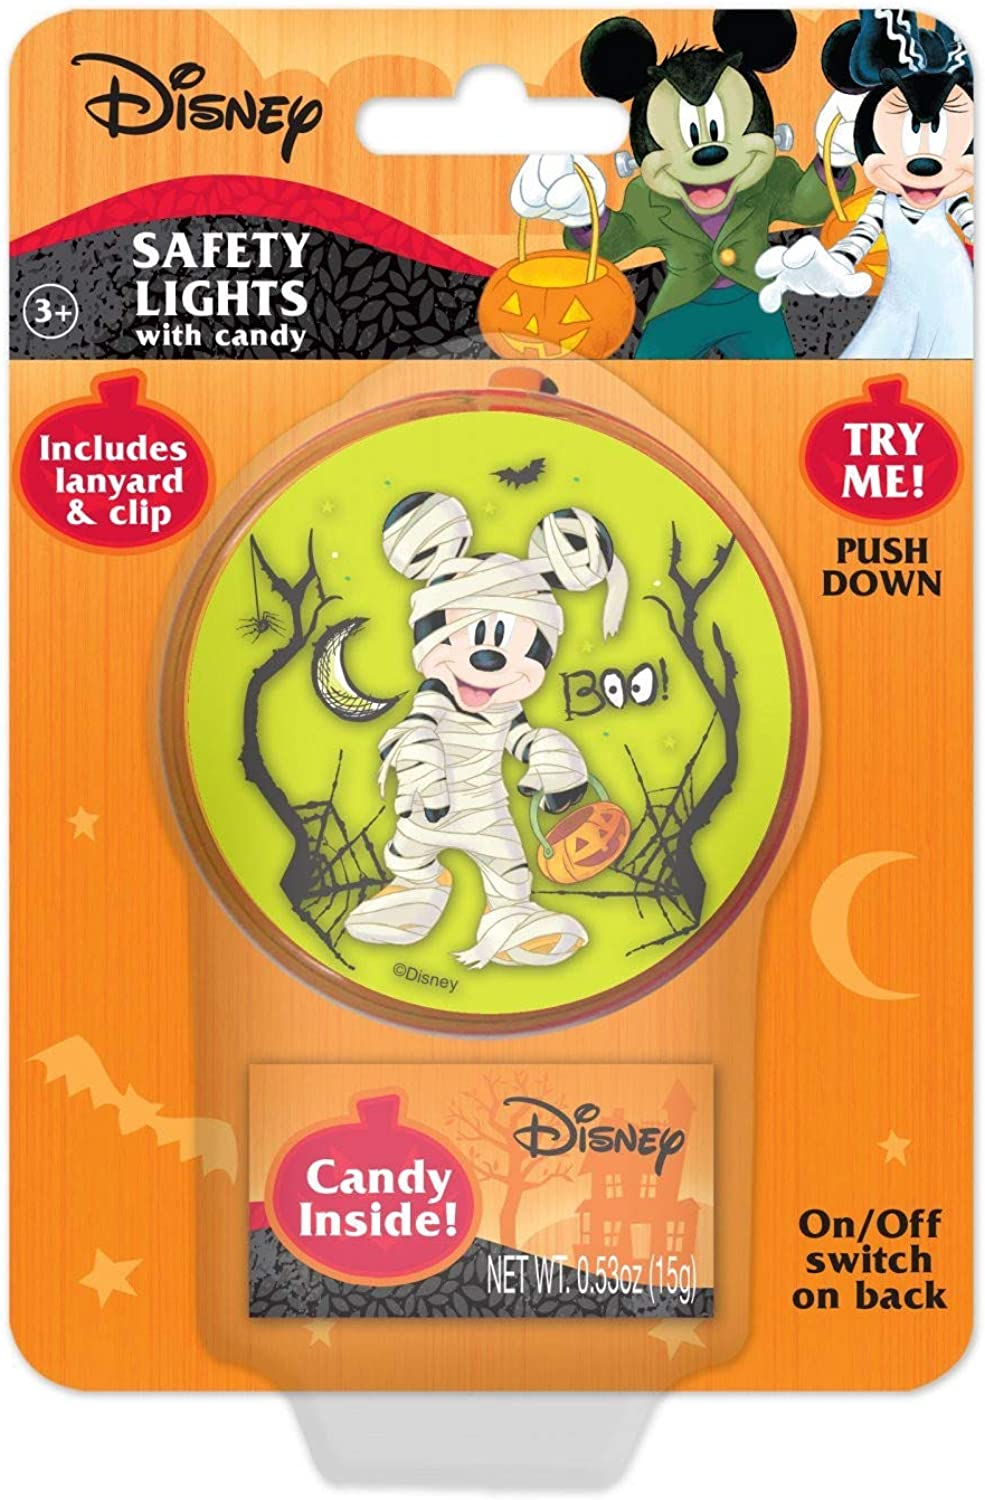 3 Inch Minnie and Mickey Mouse Safety Light with Lanyard and Clip for Halloween Trick or Treating or Night Events with Candy